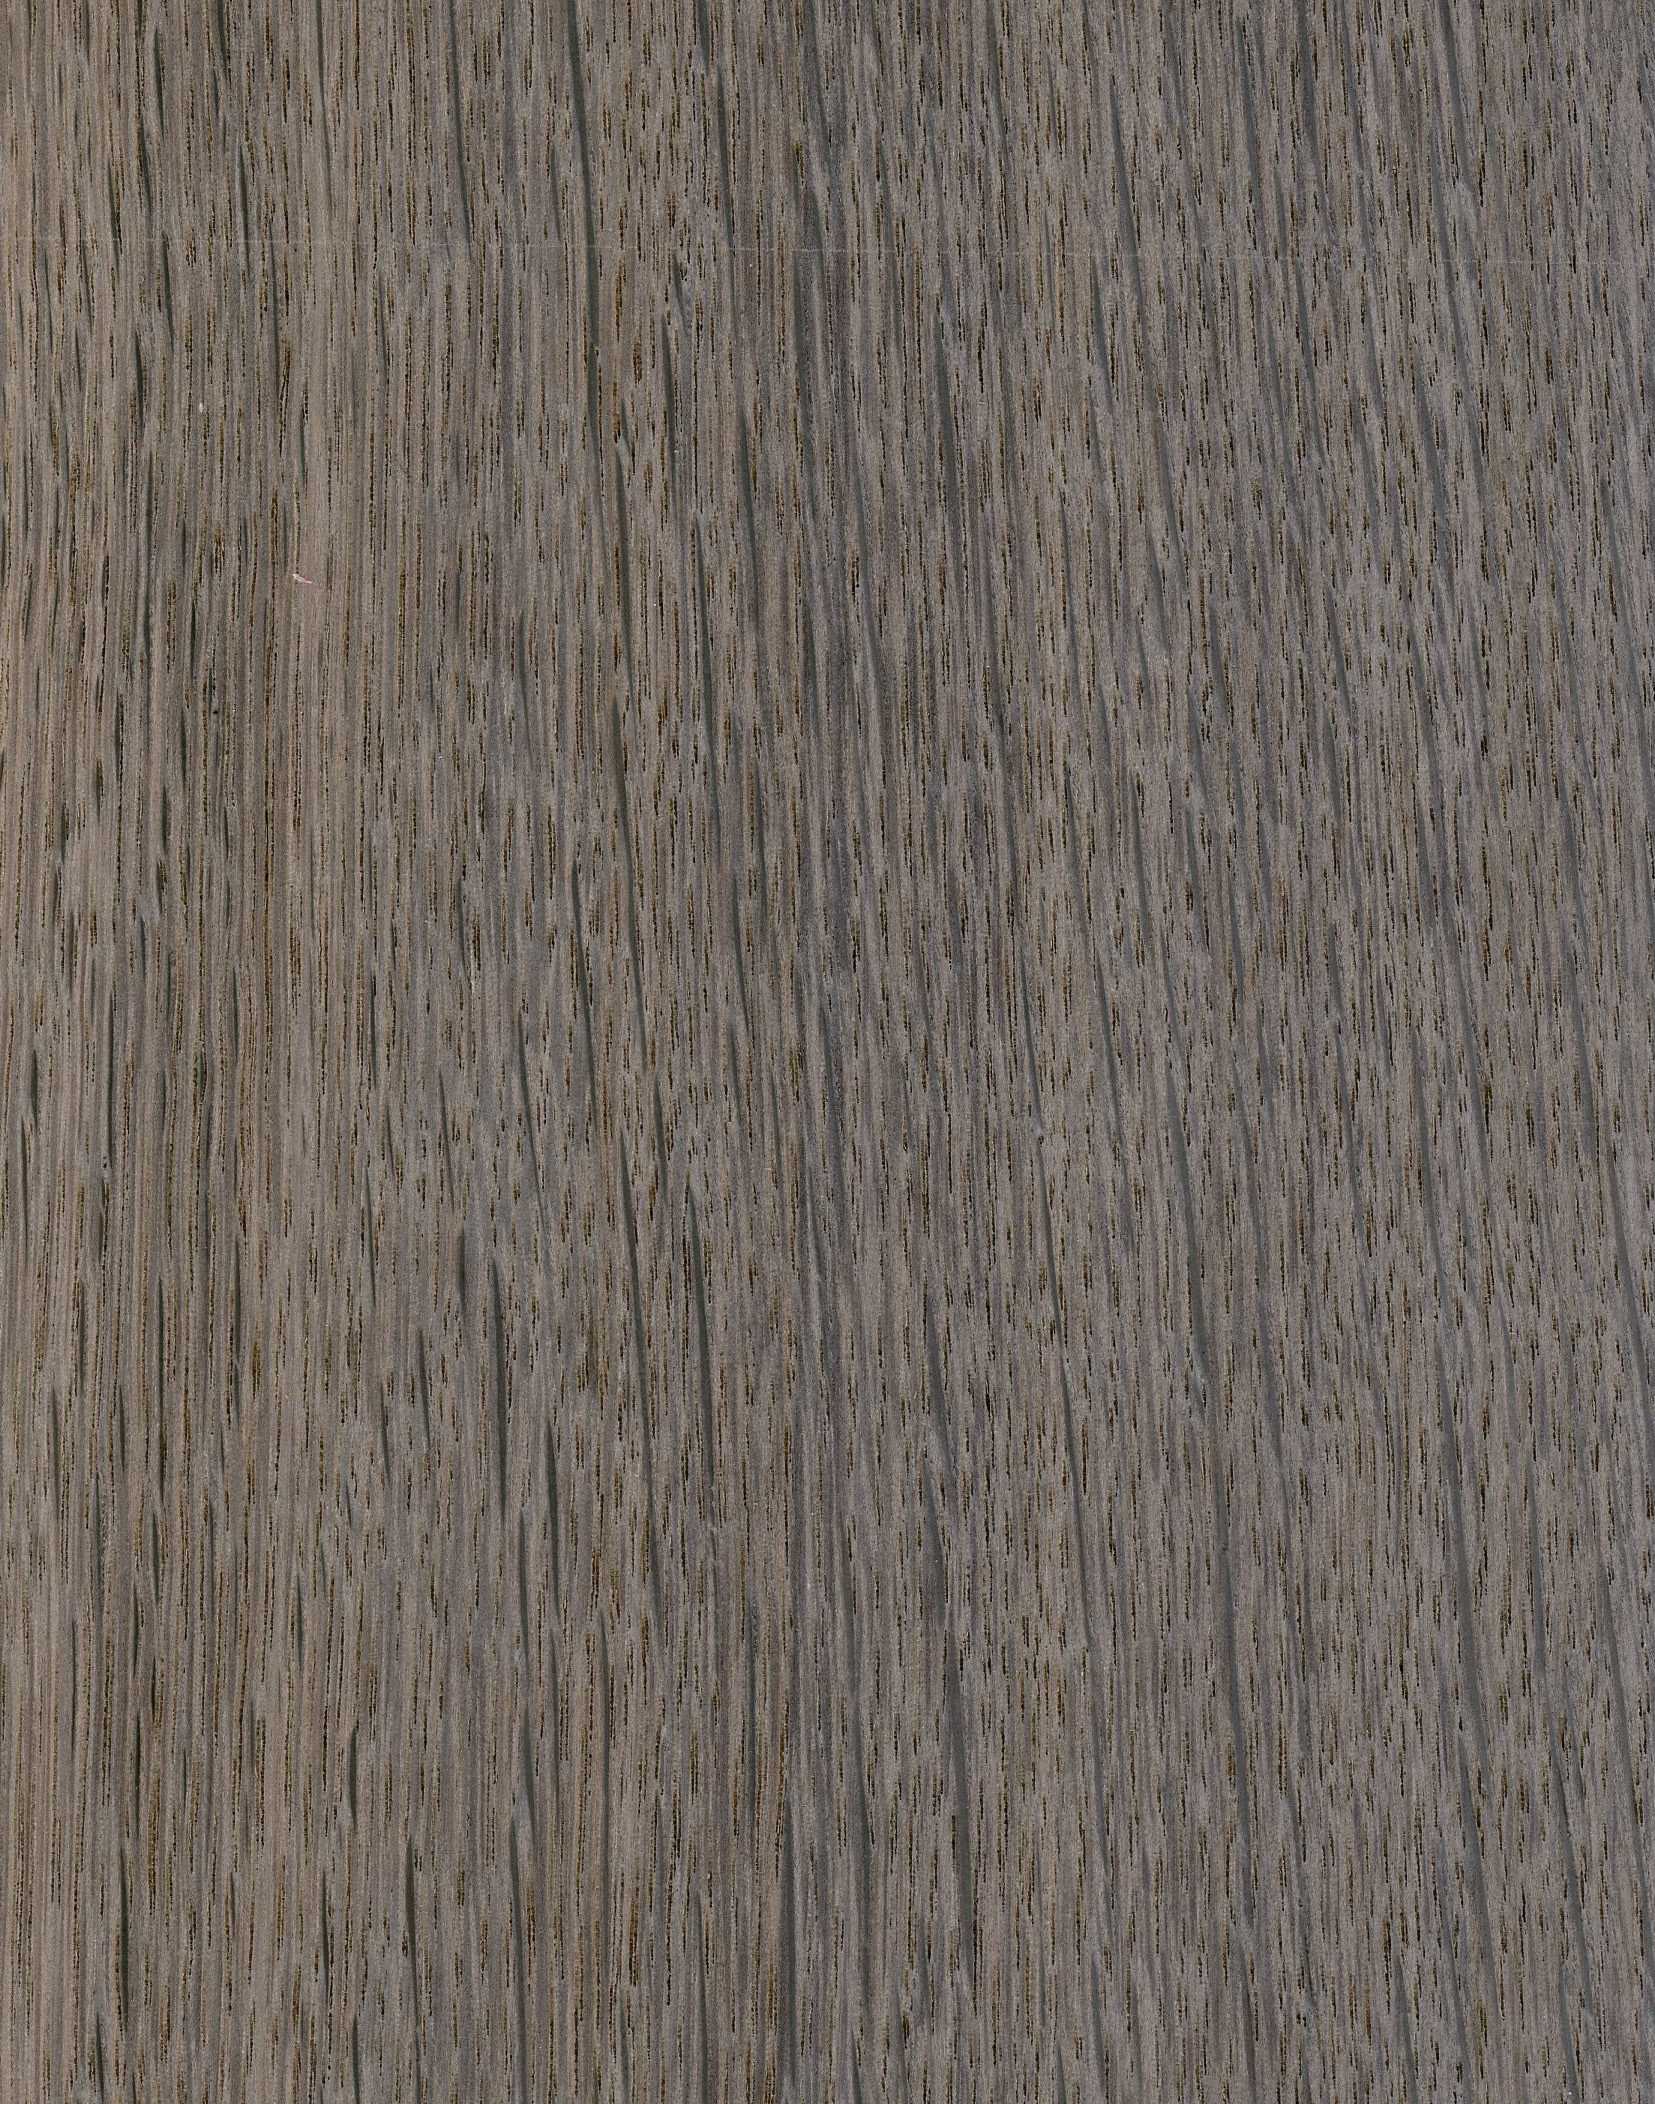 OAK CHROME (DARK)